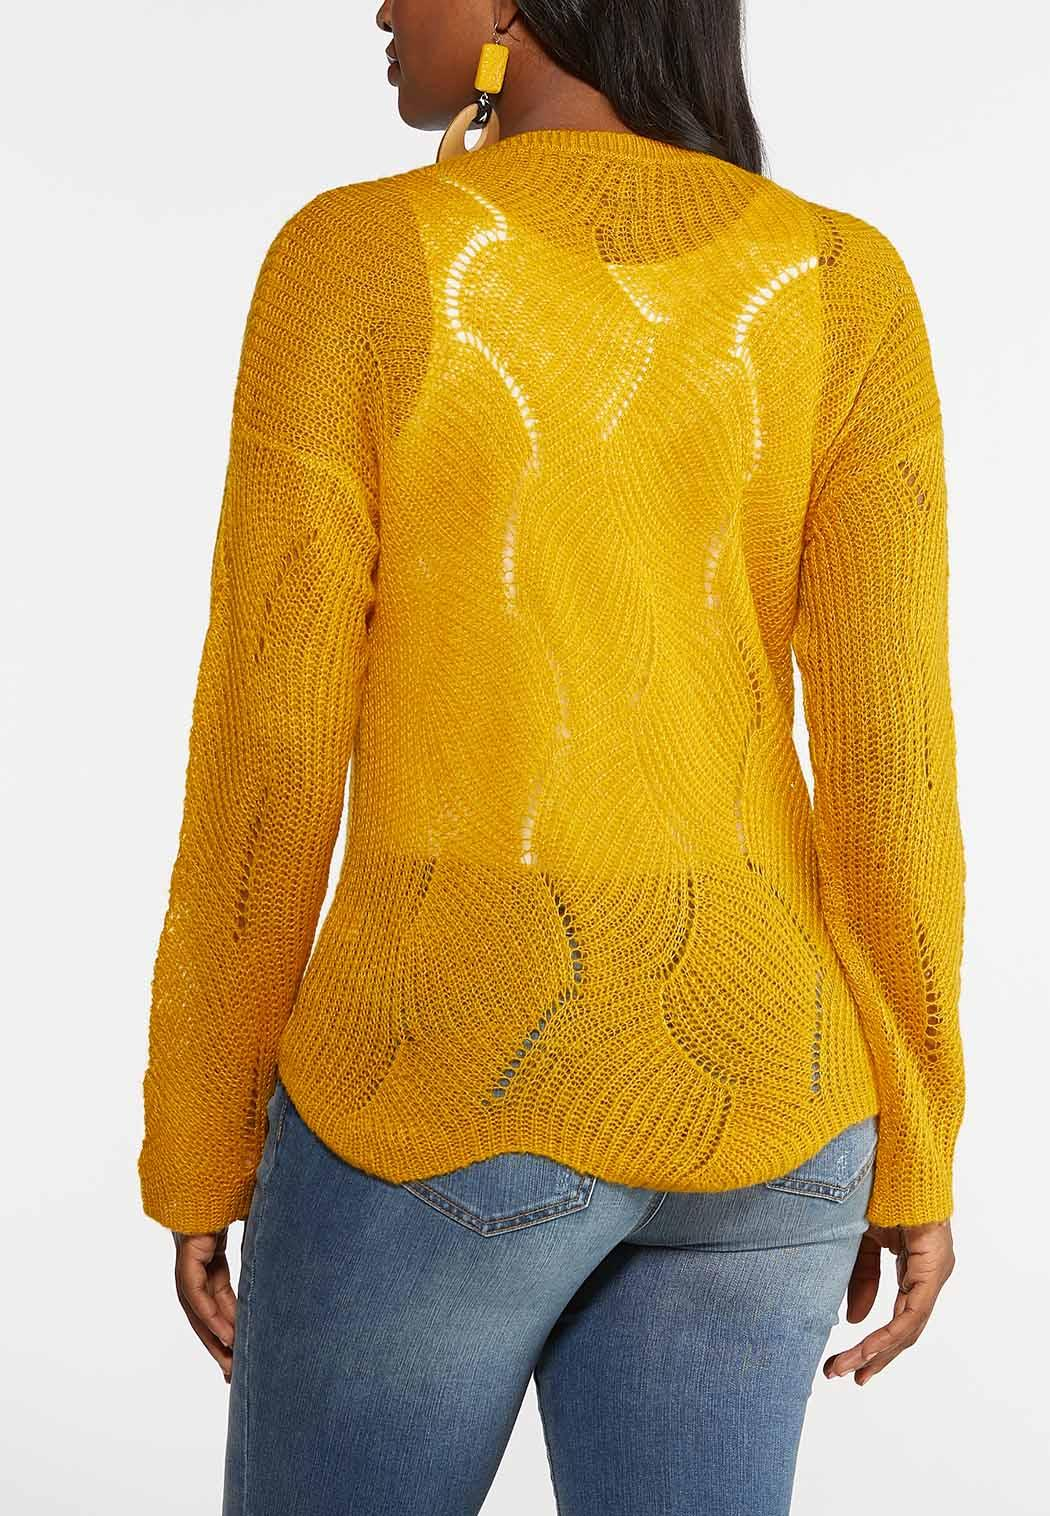 Plus Size Gold Tie Front Sweater (Item #43991539)